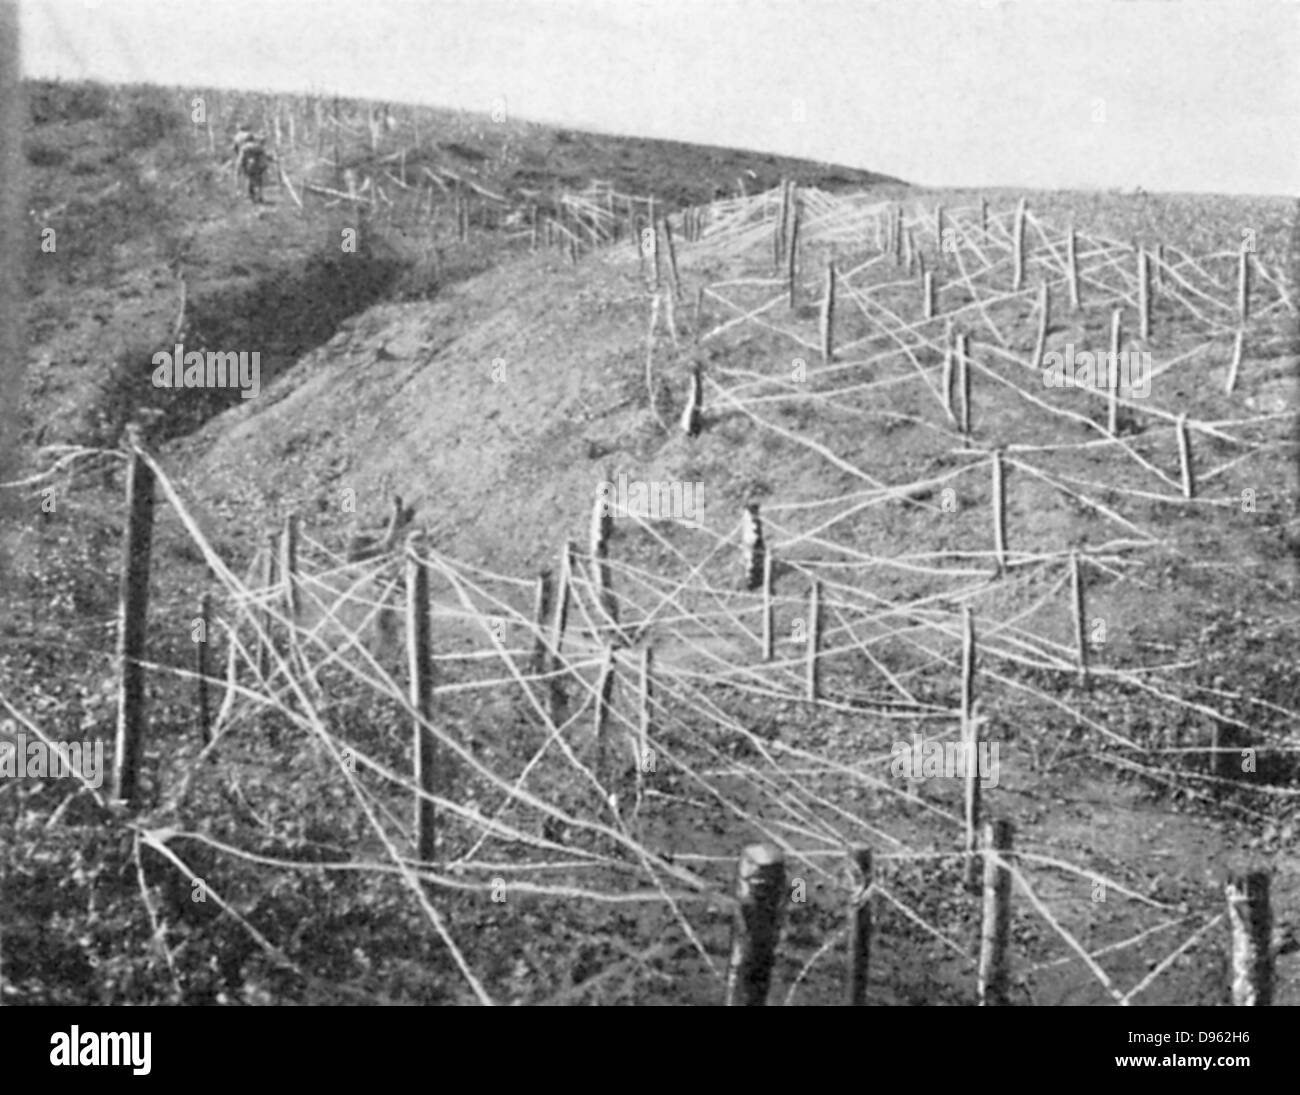 Russo-Japanese War 1904-1905:  Russian barbed wire entanglements. - Stock Image